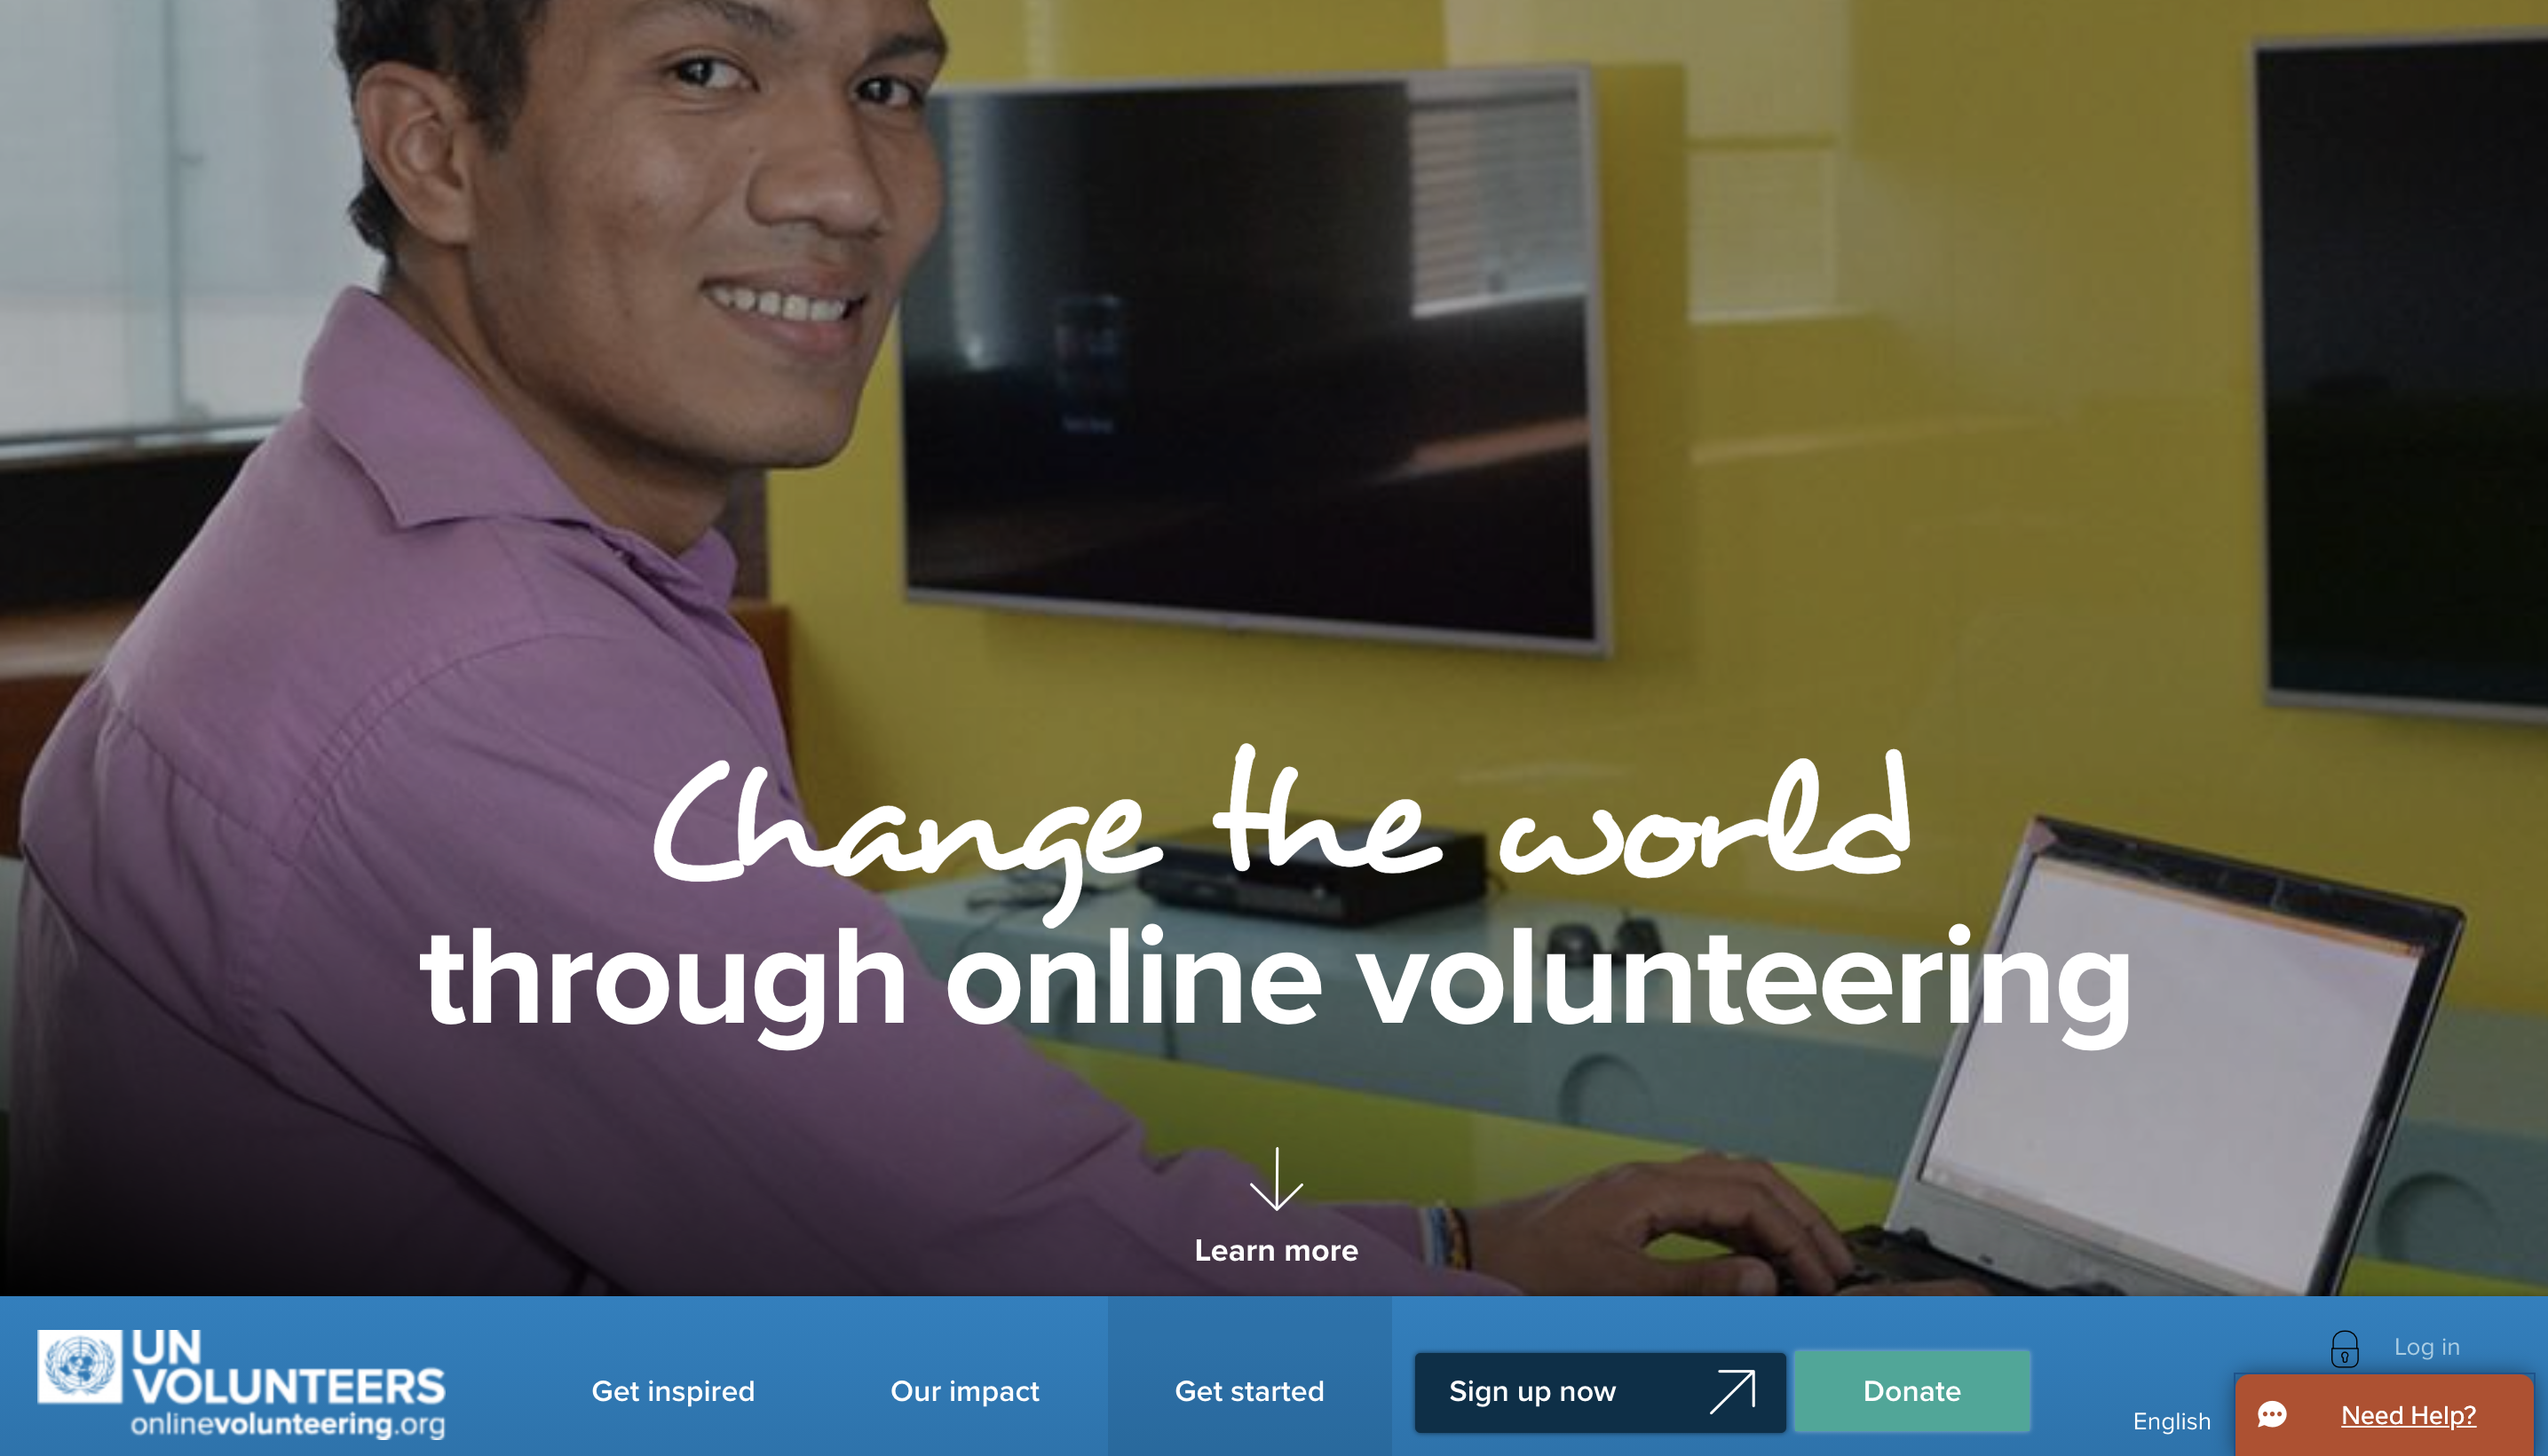 UN Volunteers website